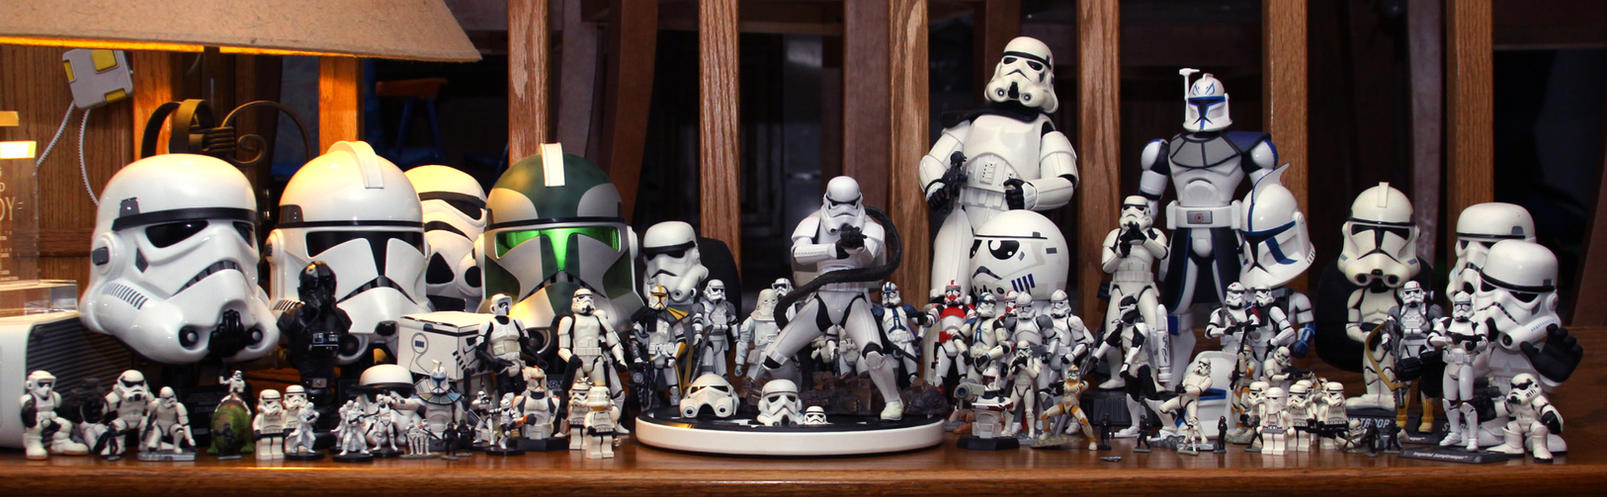 Troopers On My Desk by DanielMead